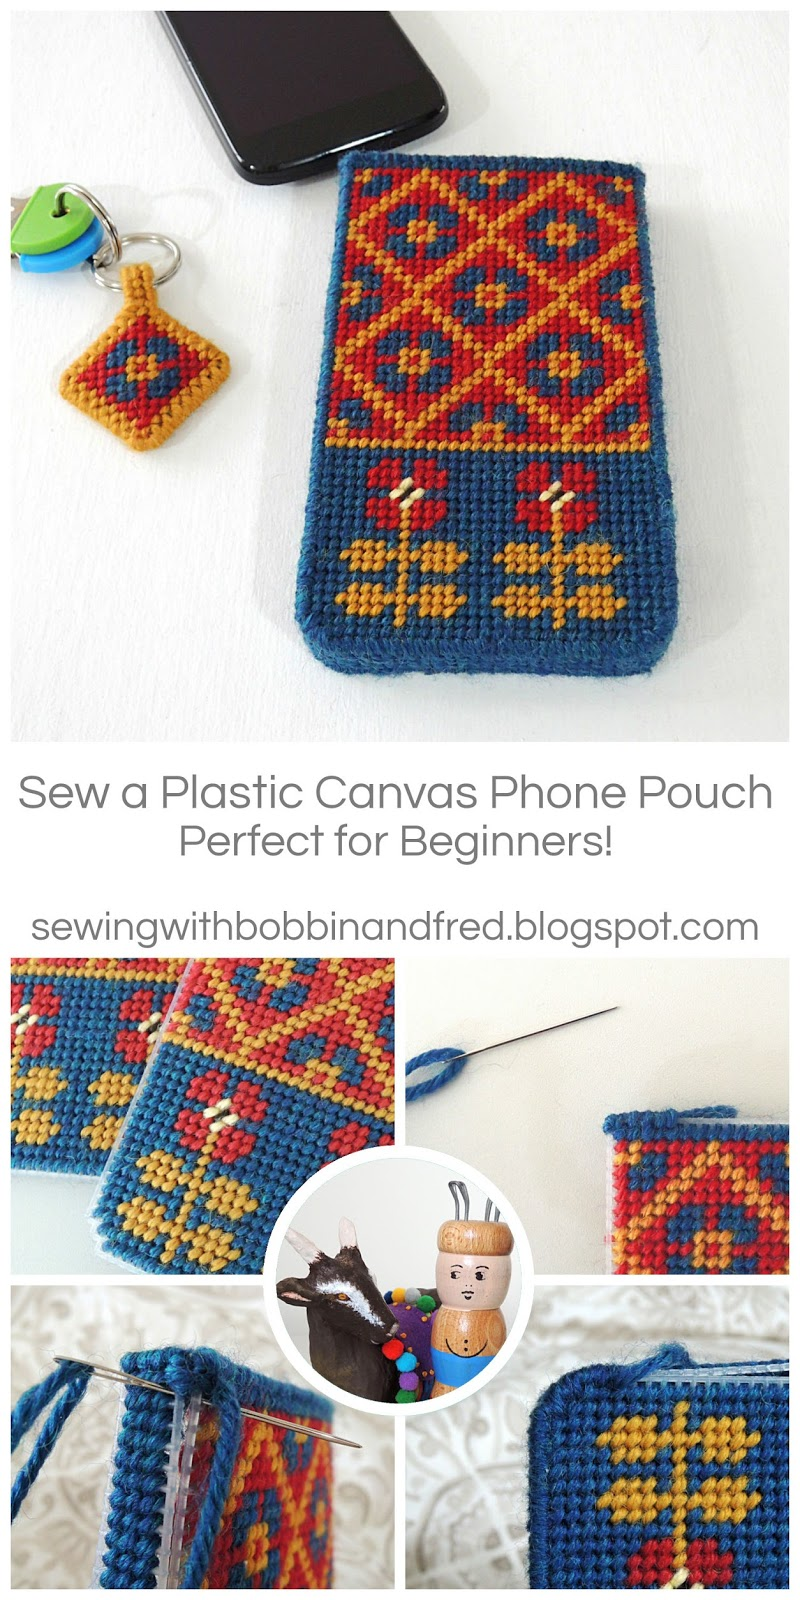 Plastic canvas phone pouch tutorial and pattern